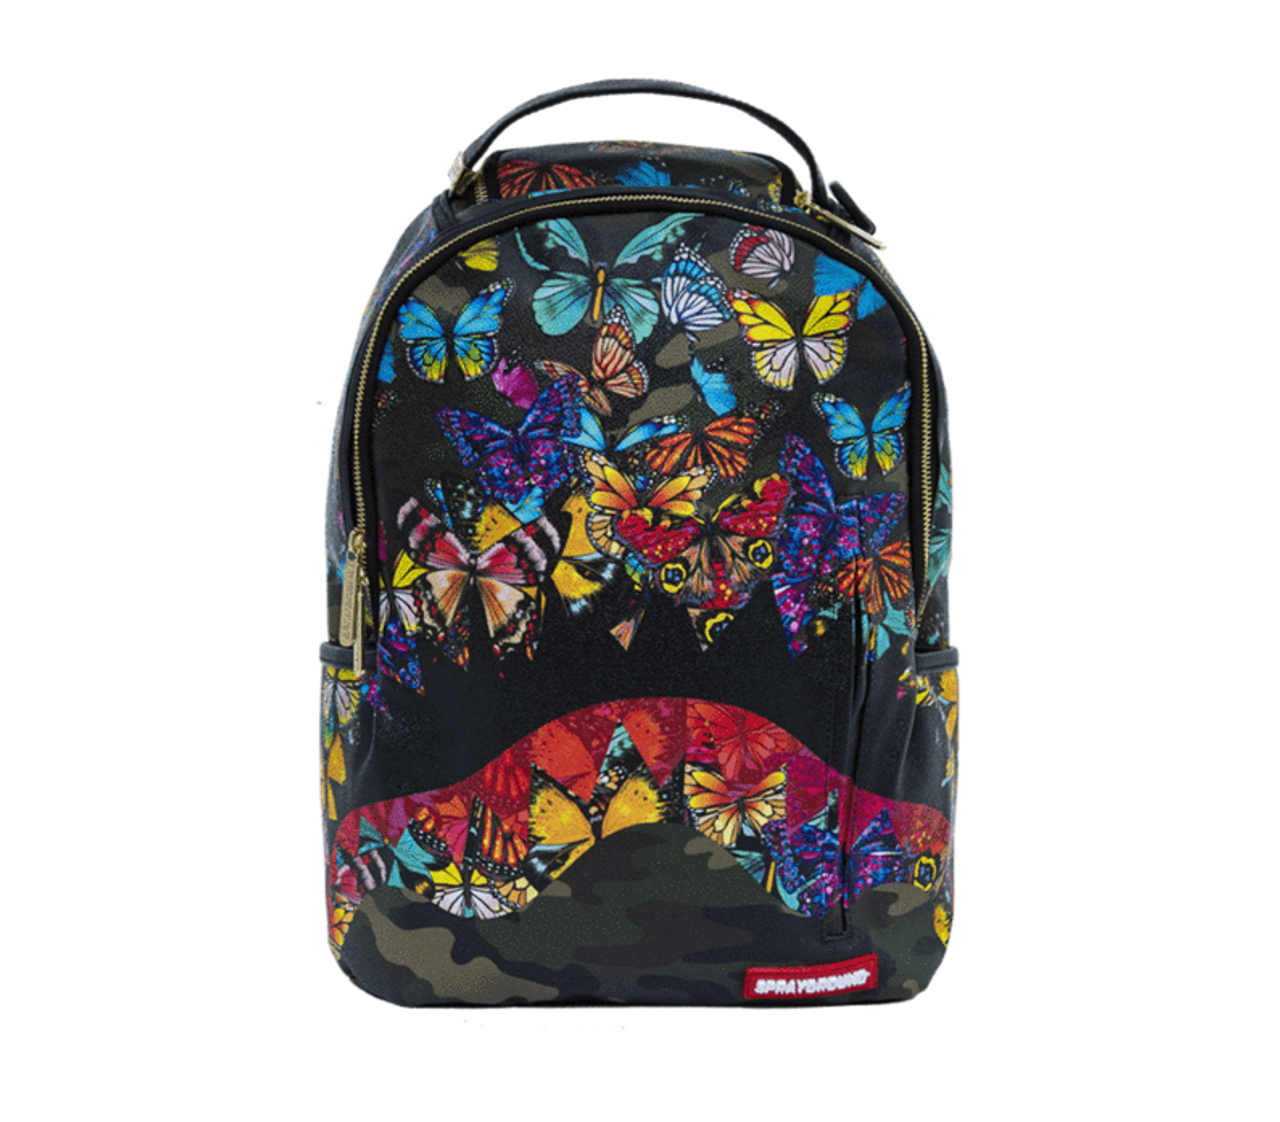 dd57c994c Sprayground Butterfly Camo Shark Mouth Urban School Book Bag Backpack  910M1640